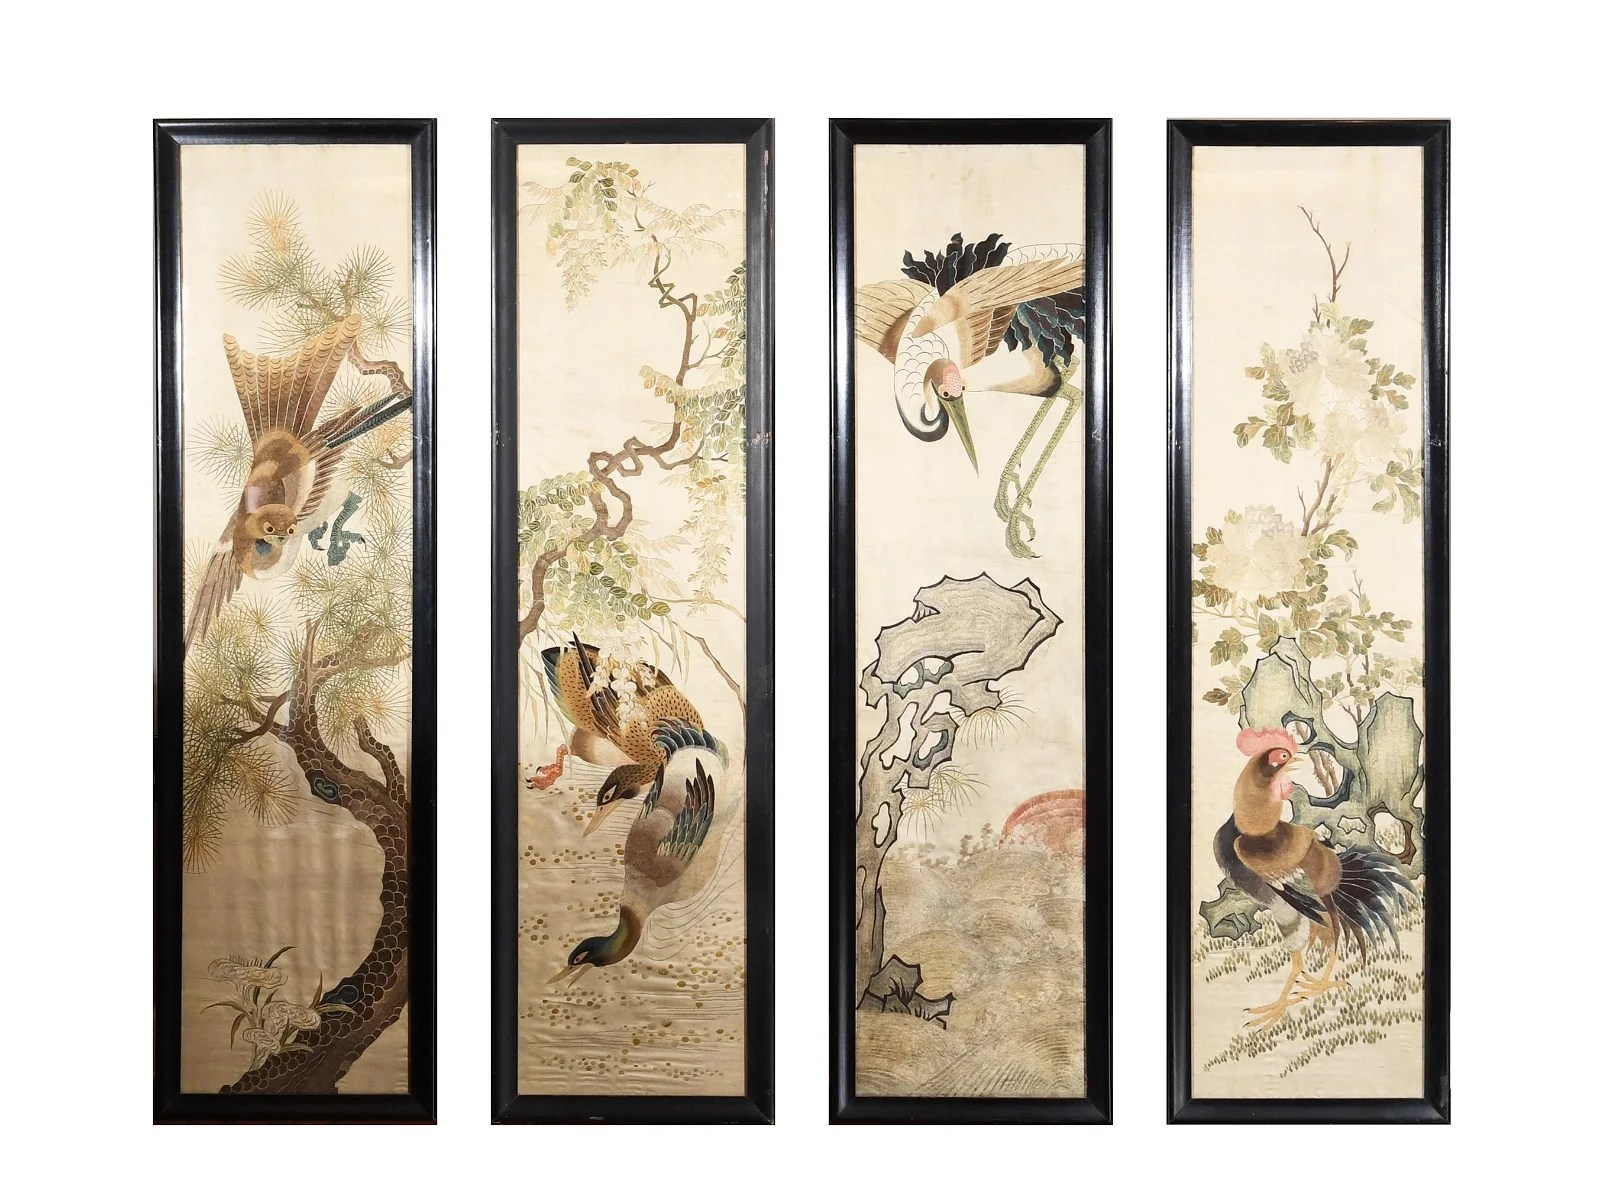 Set of 4 Framed Chinese Embroideries, 19th Century